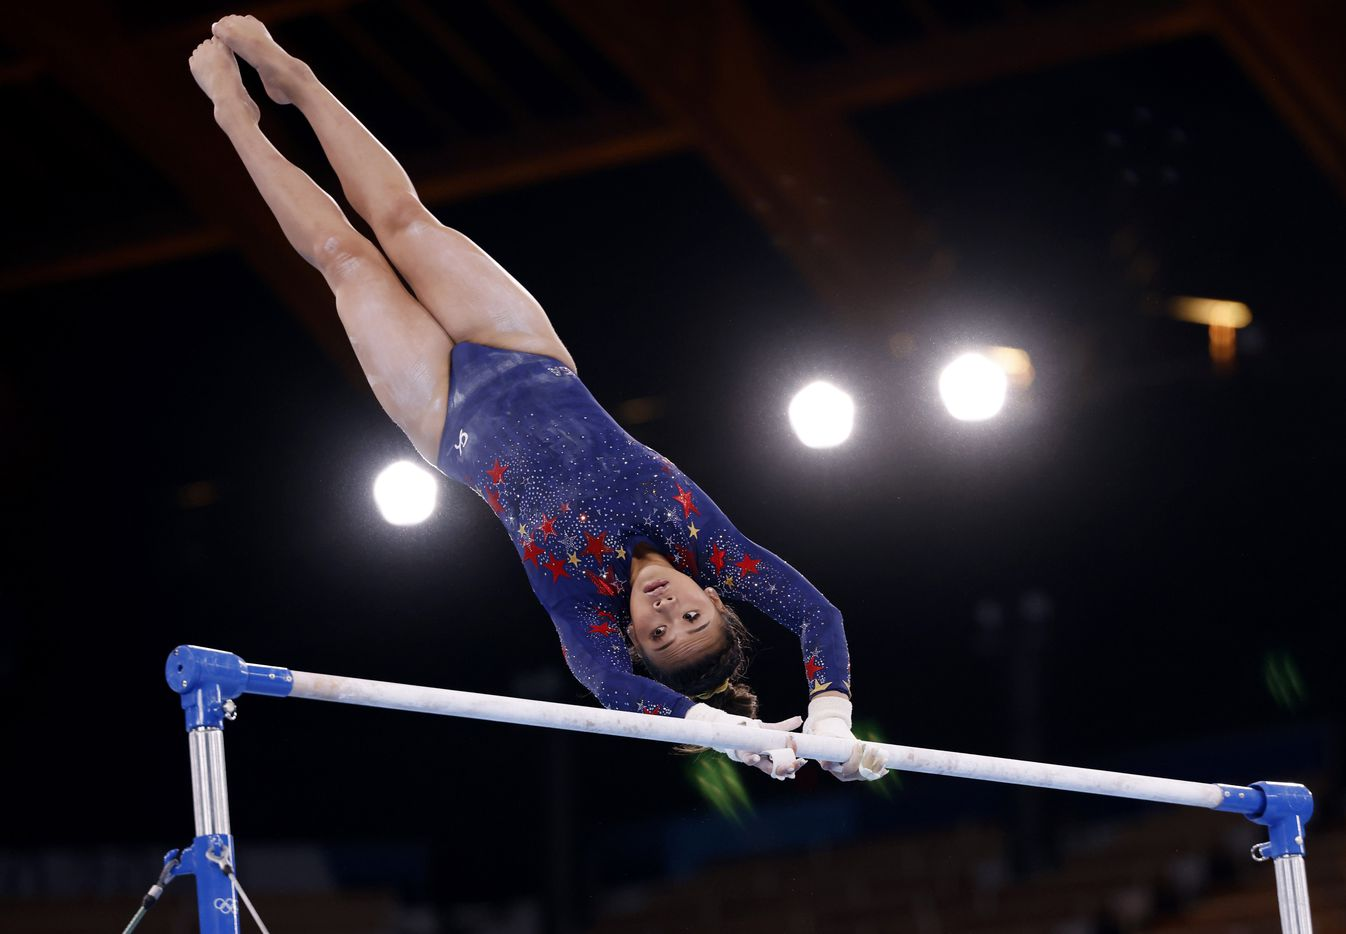 USA's Sunisa Lee competes on the uneven bars in a women's gymnastics event during the postponed 2020 Tokyo Olympics at Ariake Gymnastics Centre on Sunday, July 25, 2021, in Tokyo, Japan. (Vernon Bryant/The Dallas Morning News)